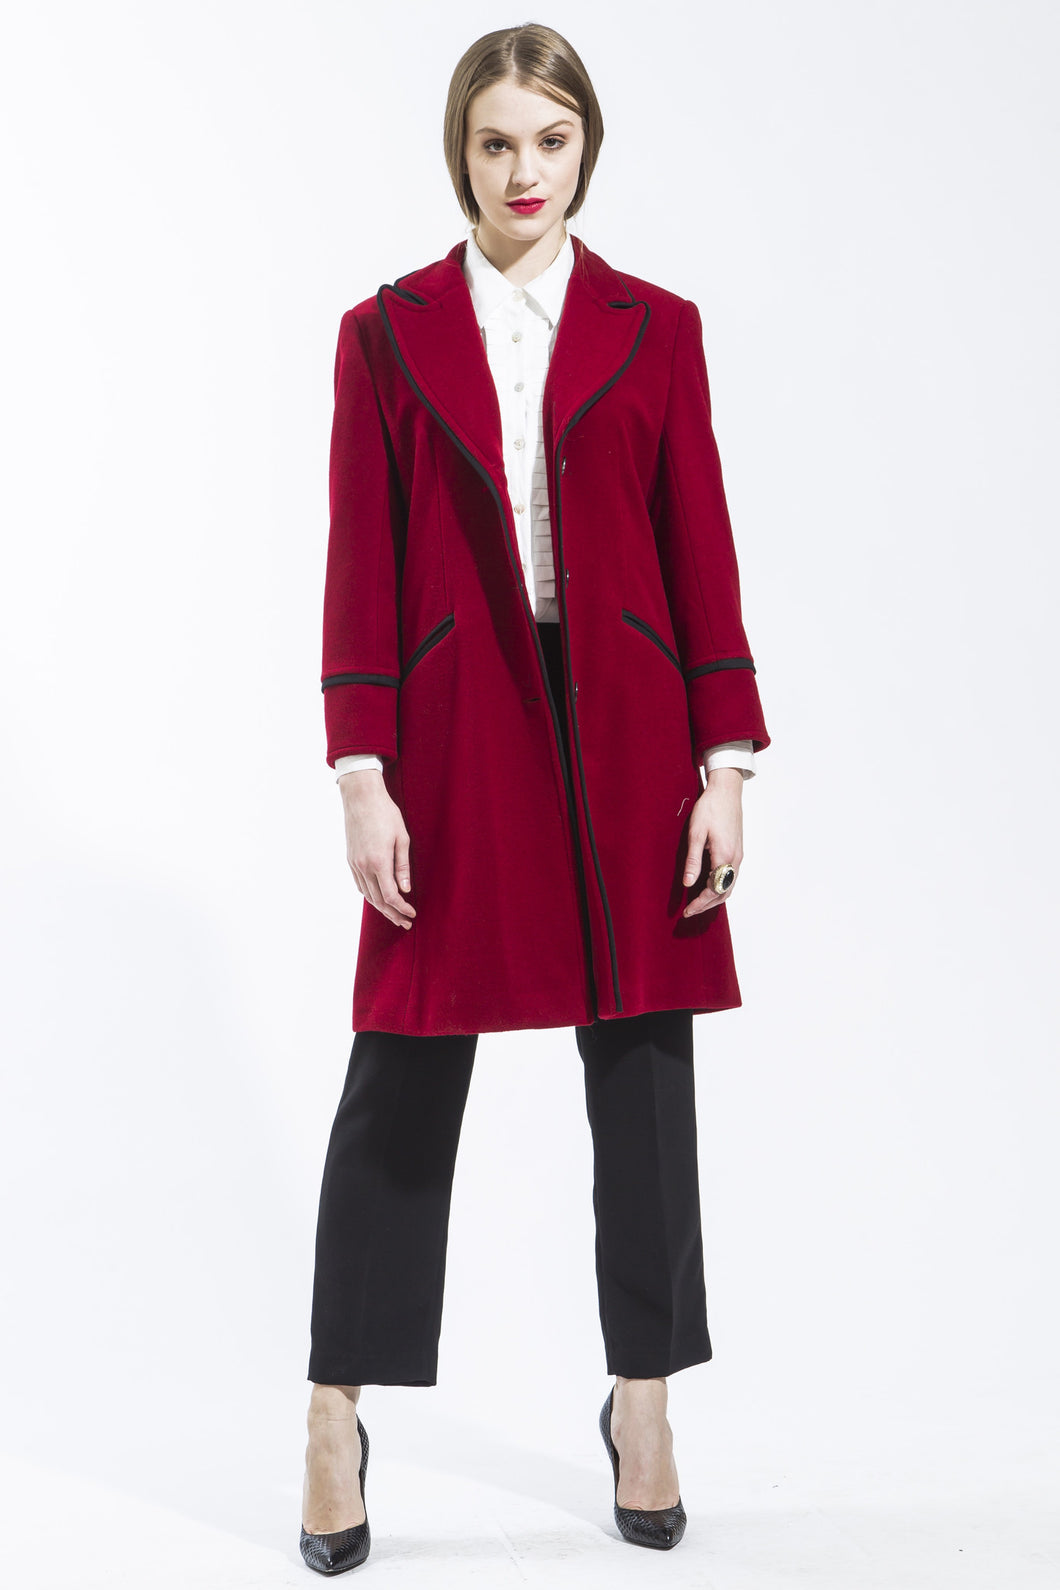 Made in NYC Cashmere Blend Coat Style # 109